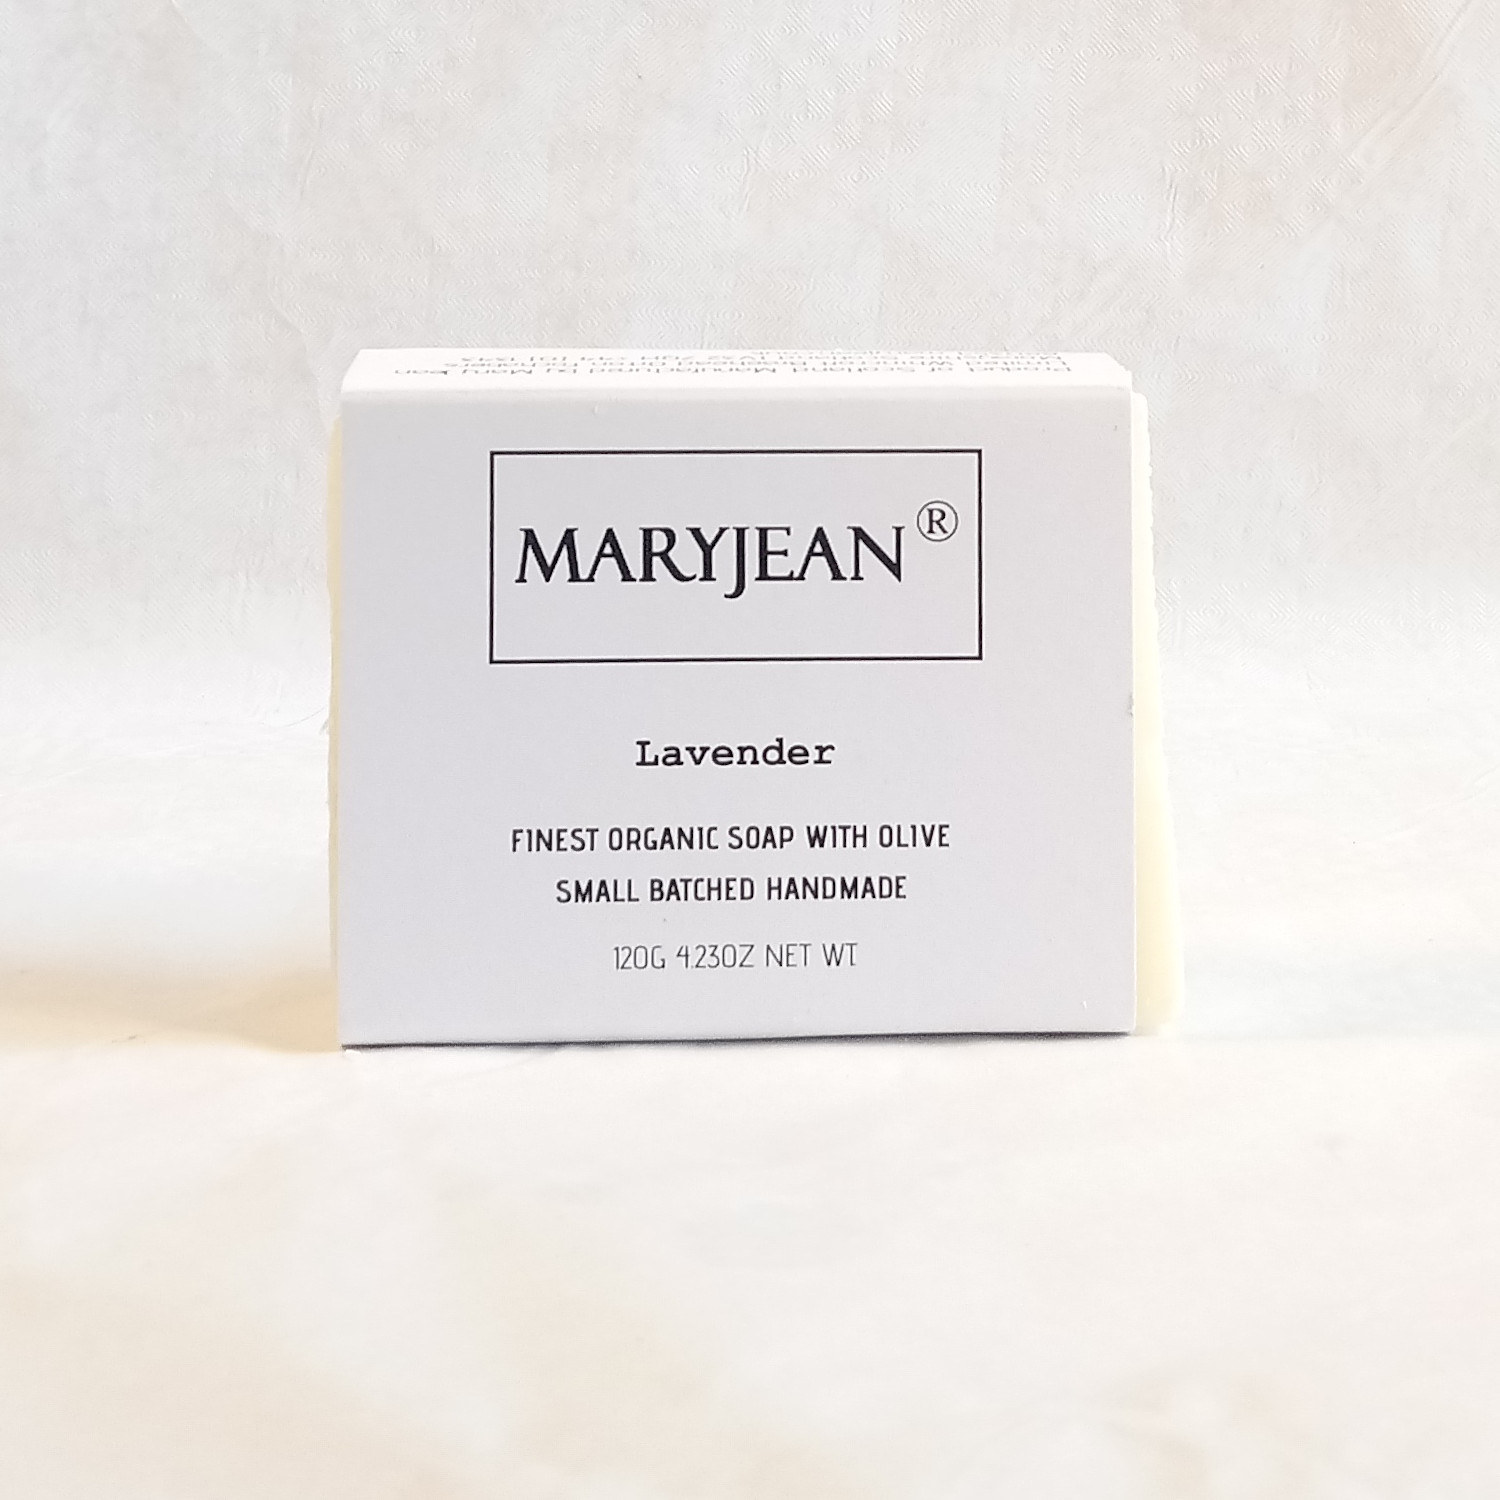 Natural bar of Lavender essential oil soap for dry skin conditions protects against sun damage with improved skin tone Organic Scottish Lavender Soap Handmade With Olive